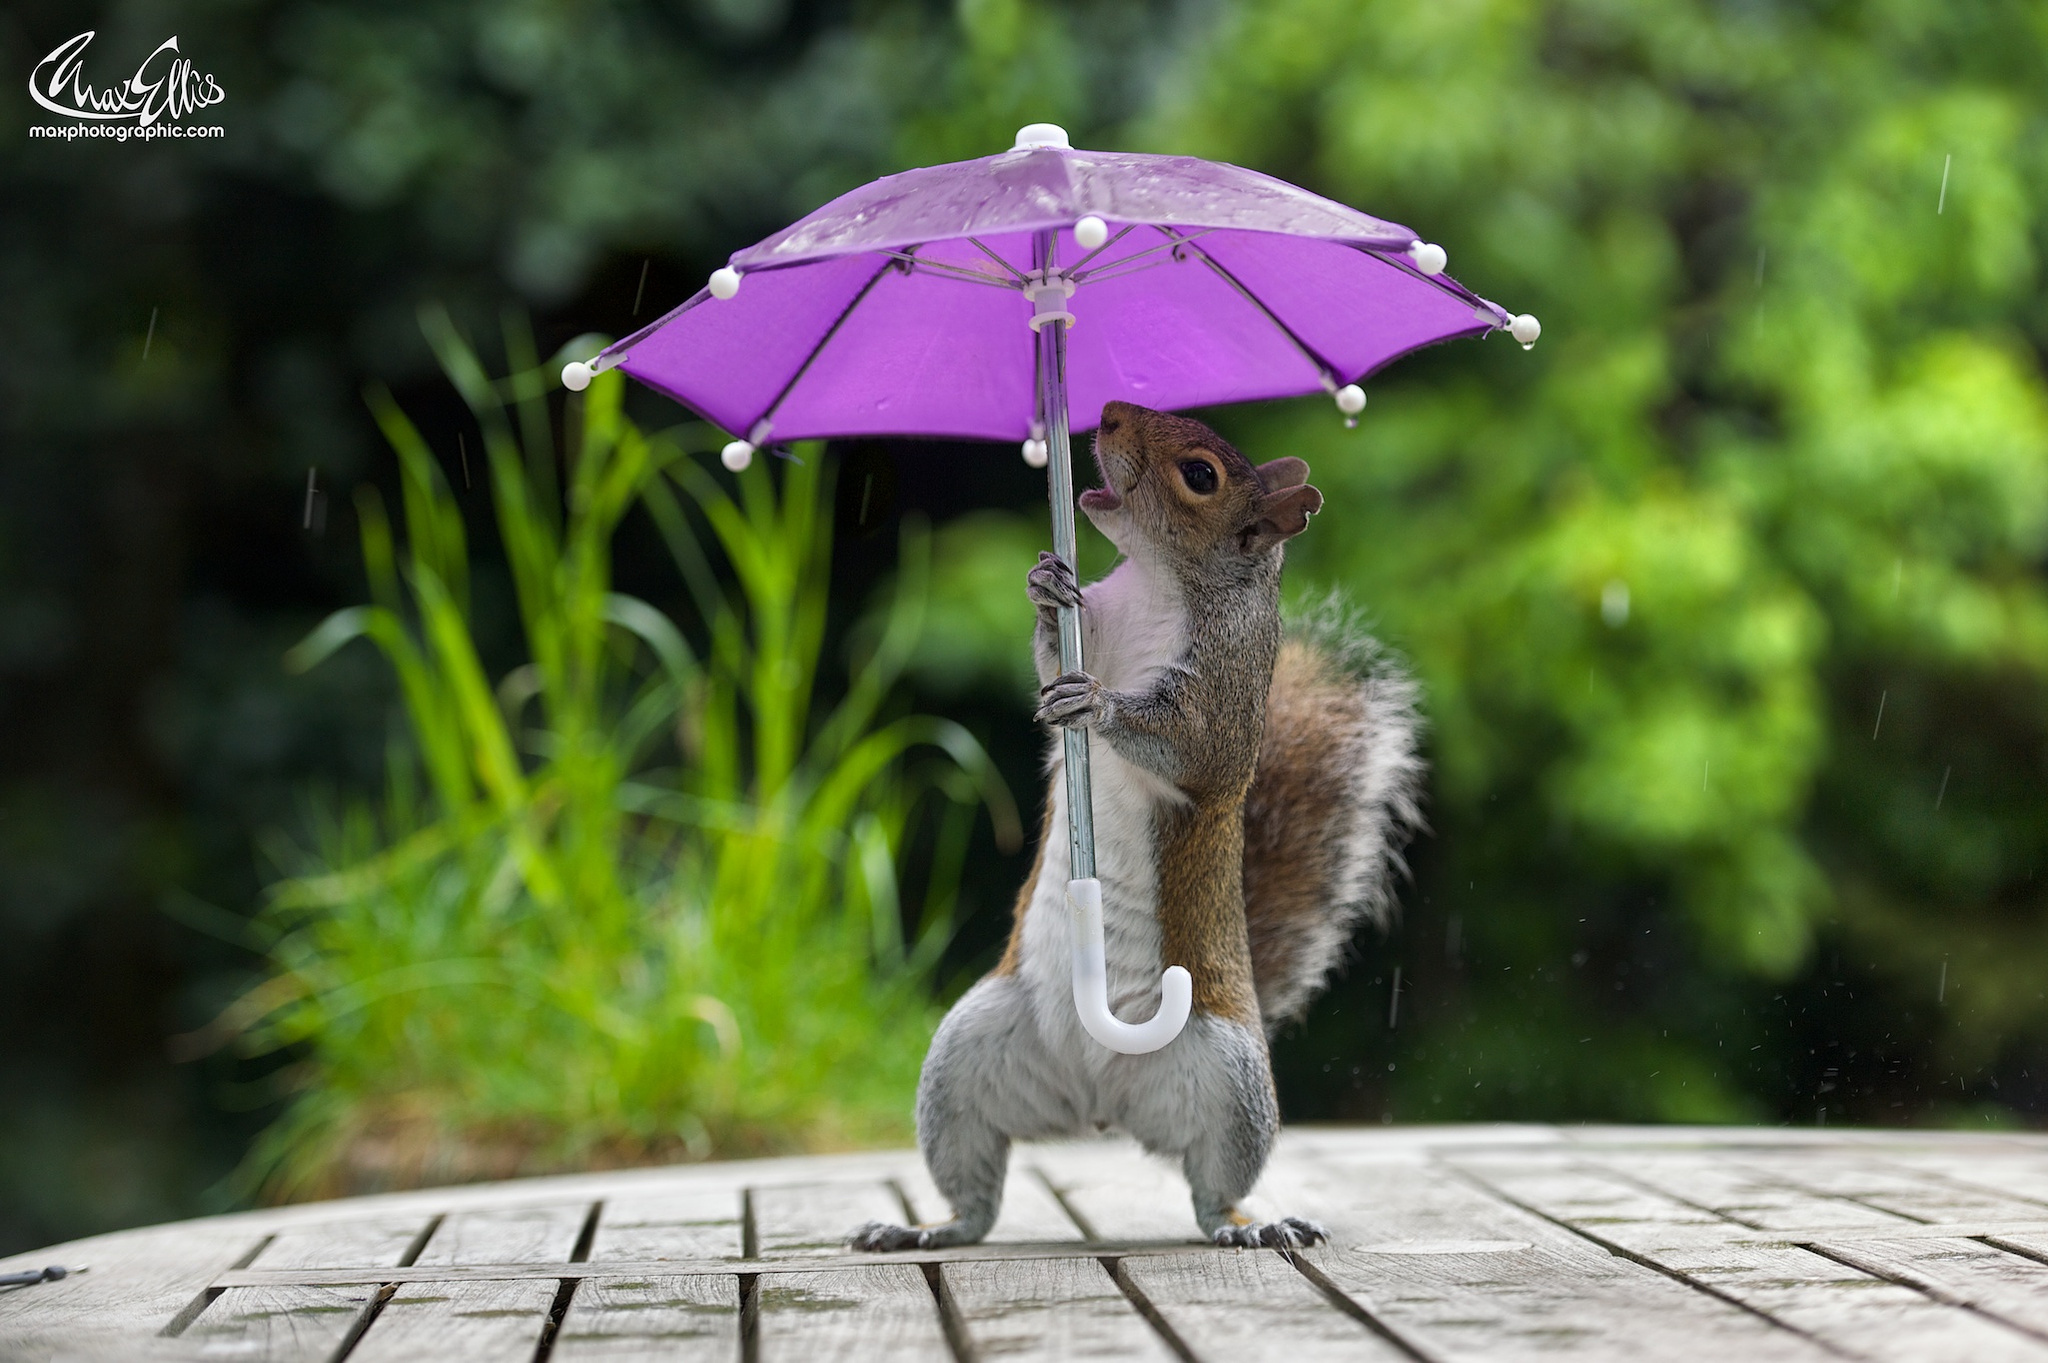 500px Blog Photographer Gets Squirrel To Pose With A Tiny